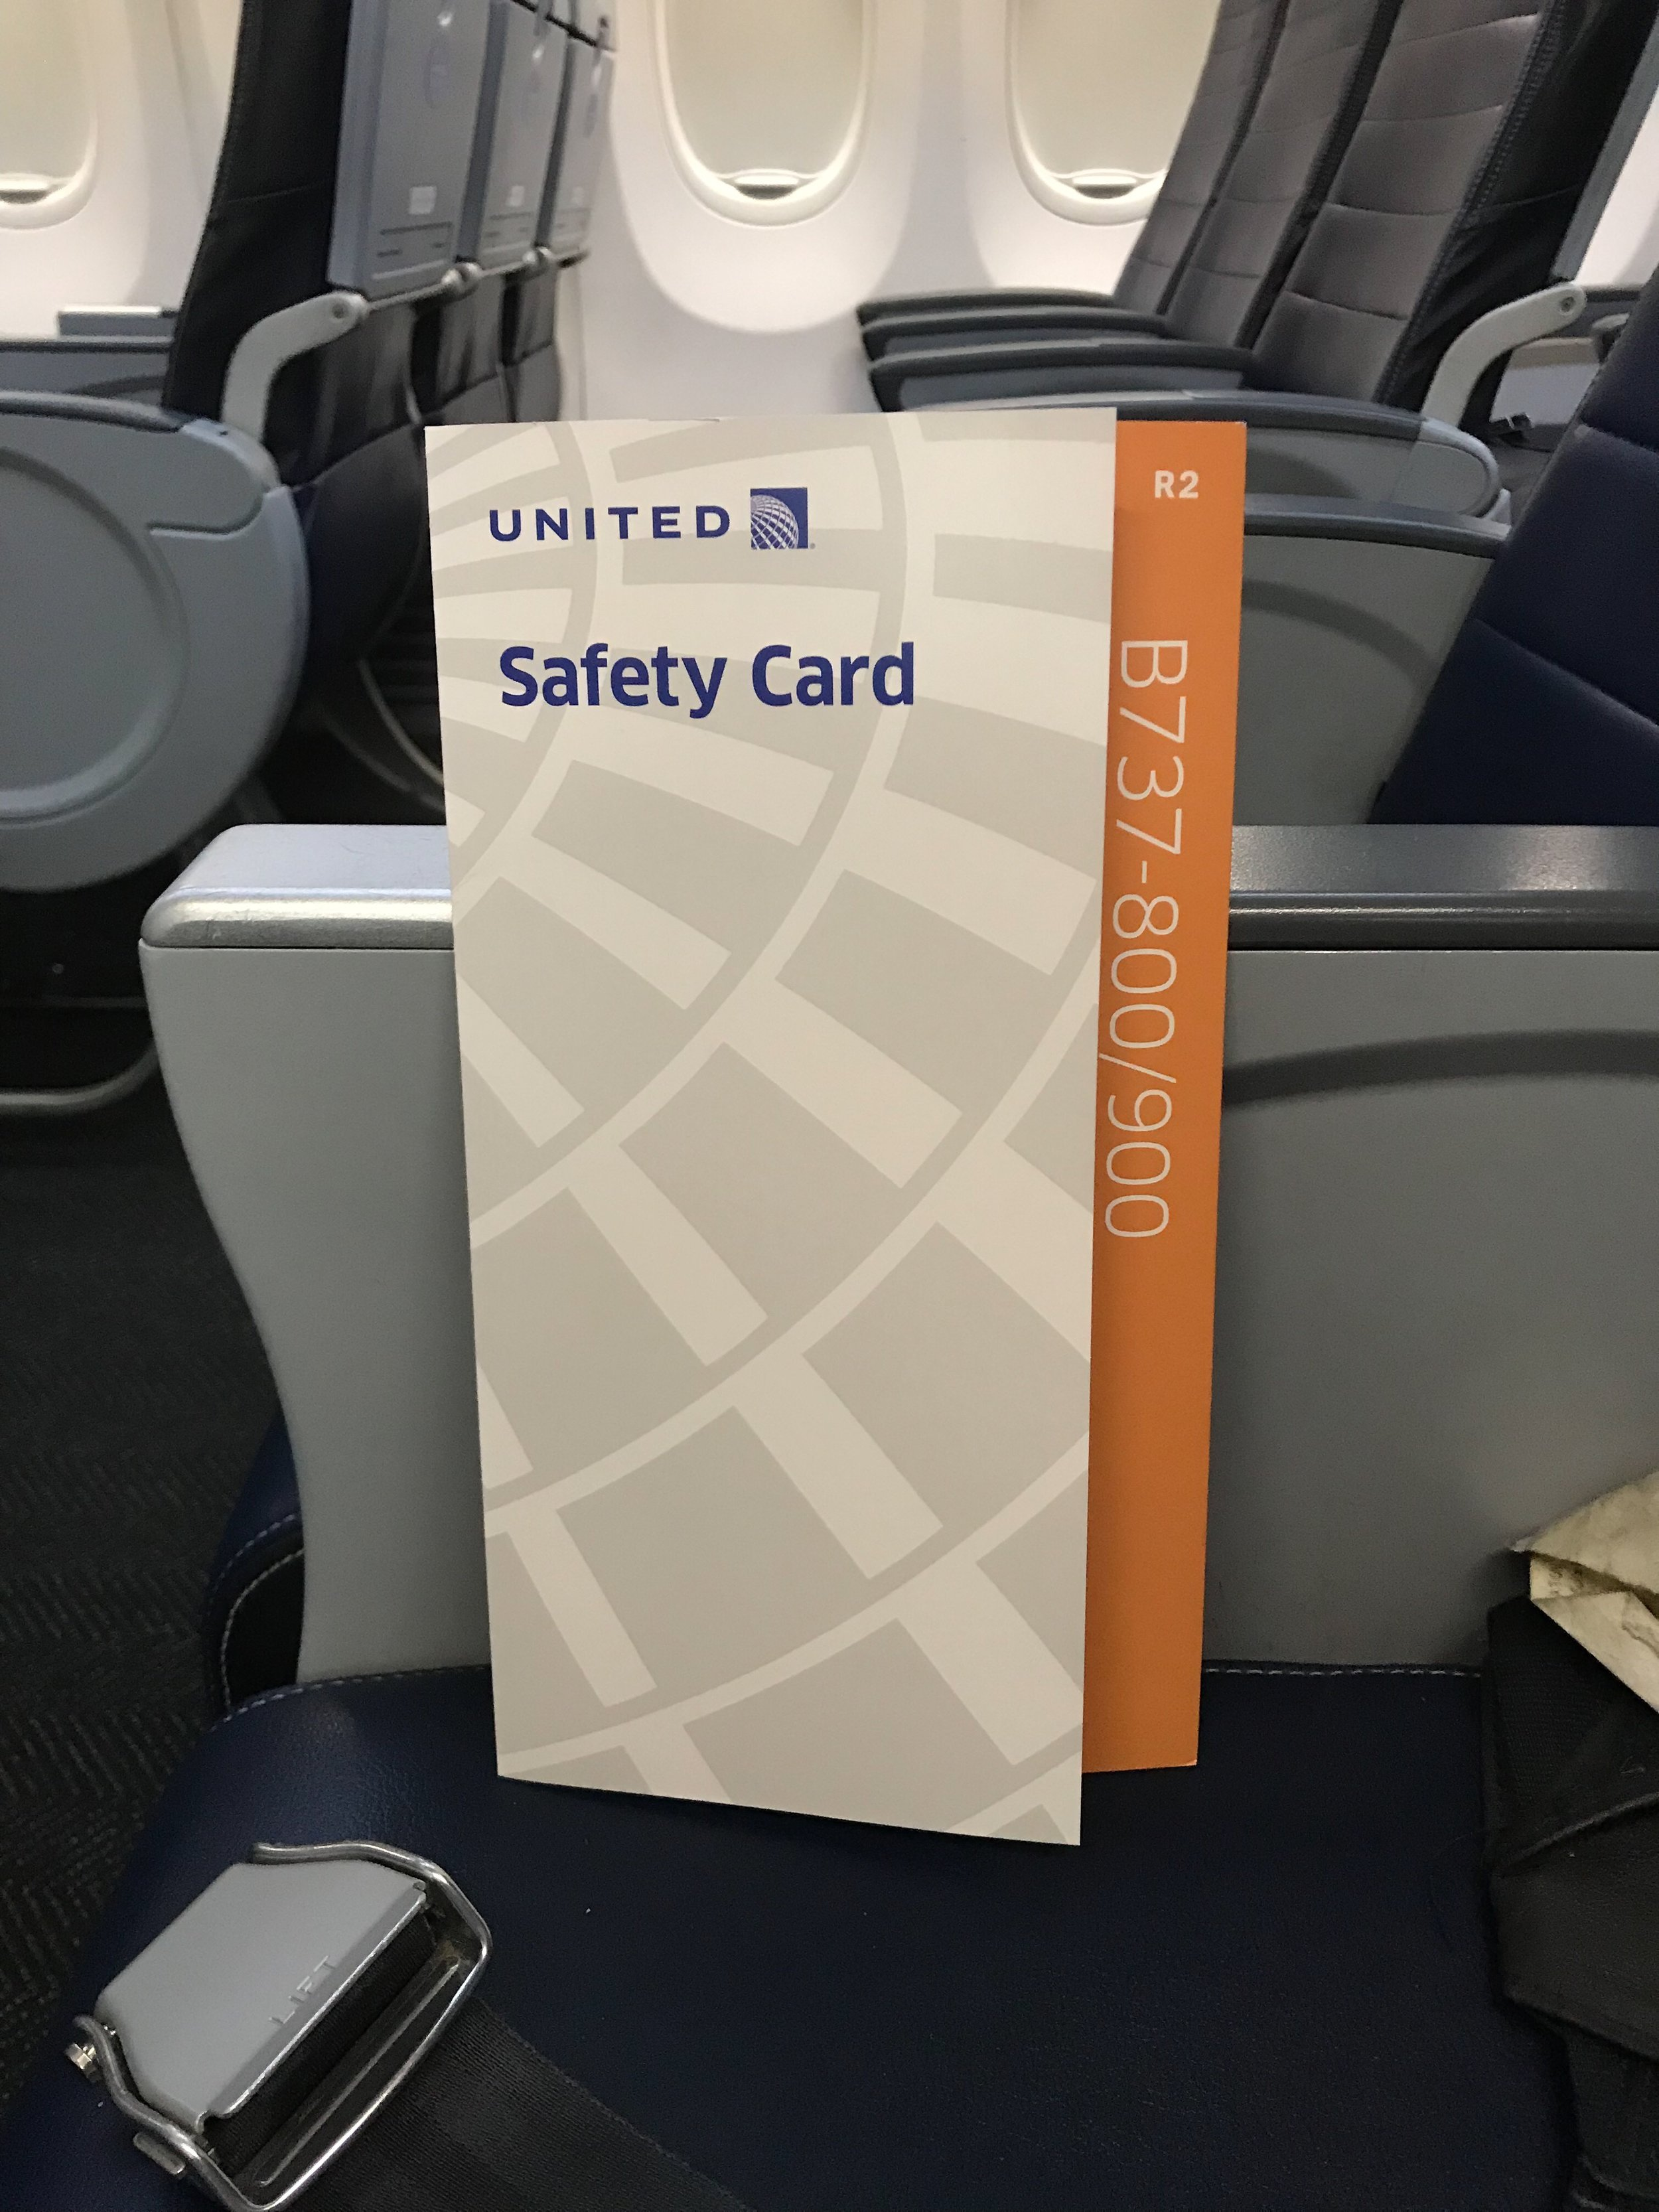 The safety card on the 737-900.